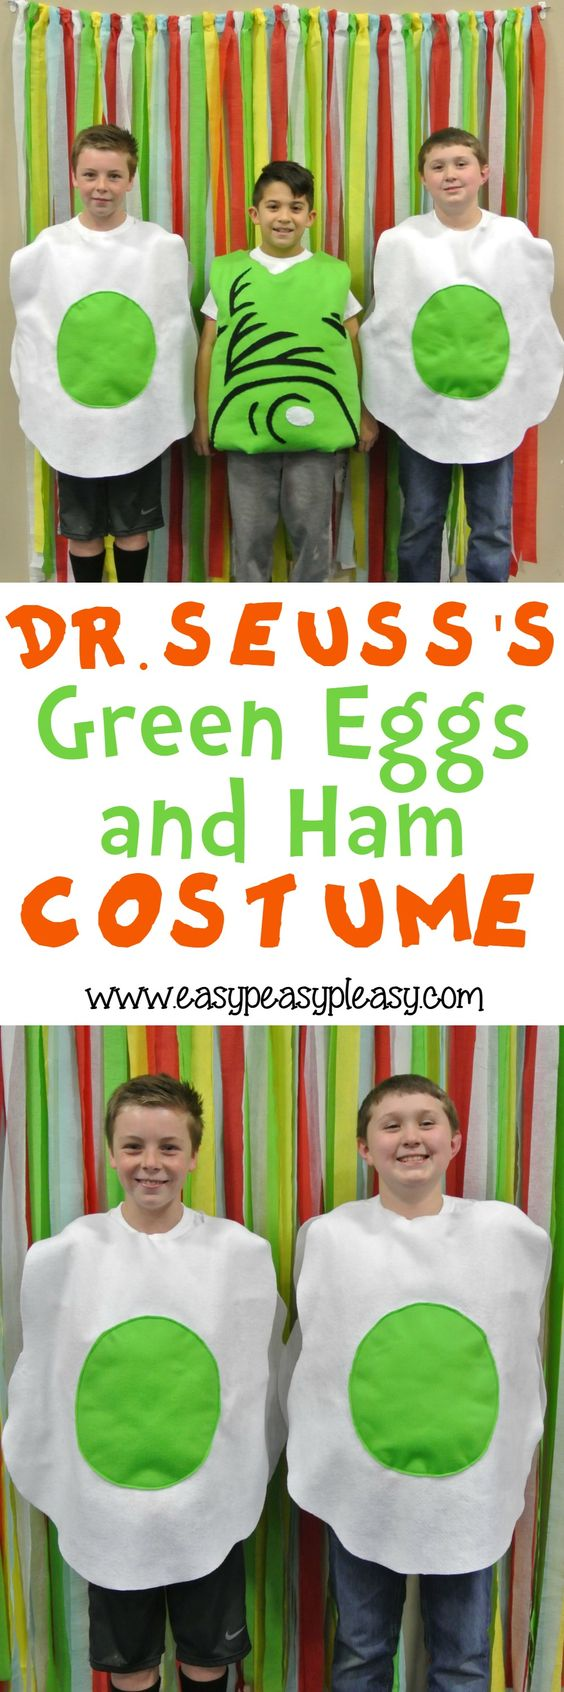 Dr. Seuss Green Eggs And Ham Costume.